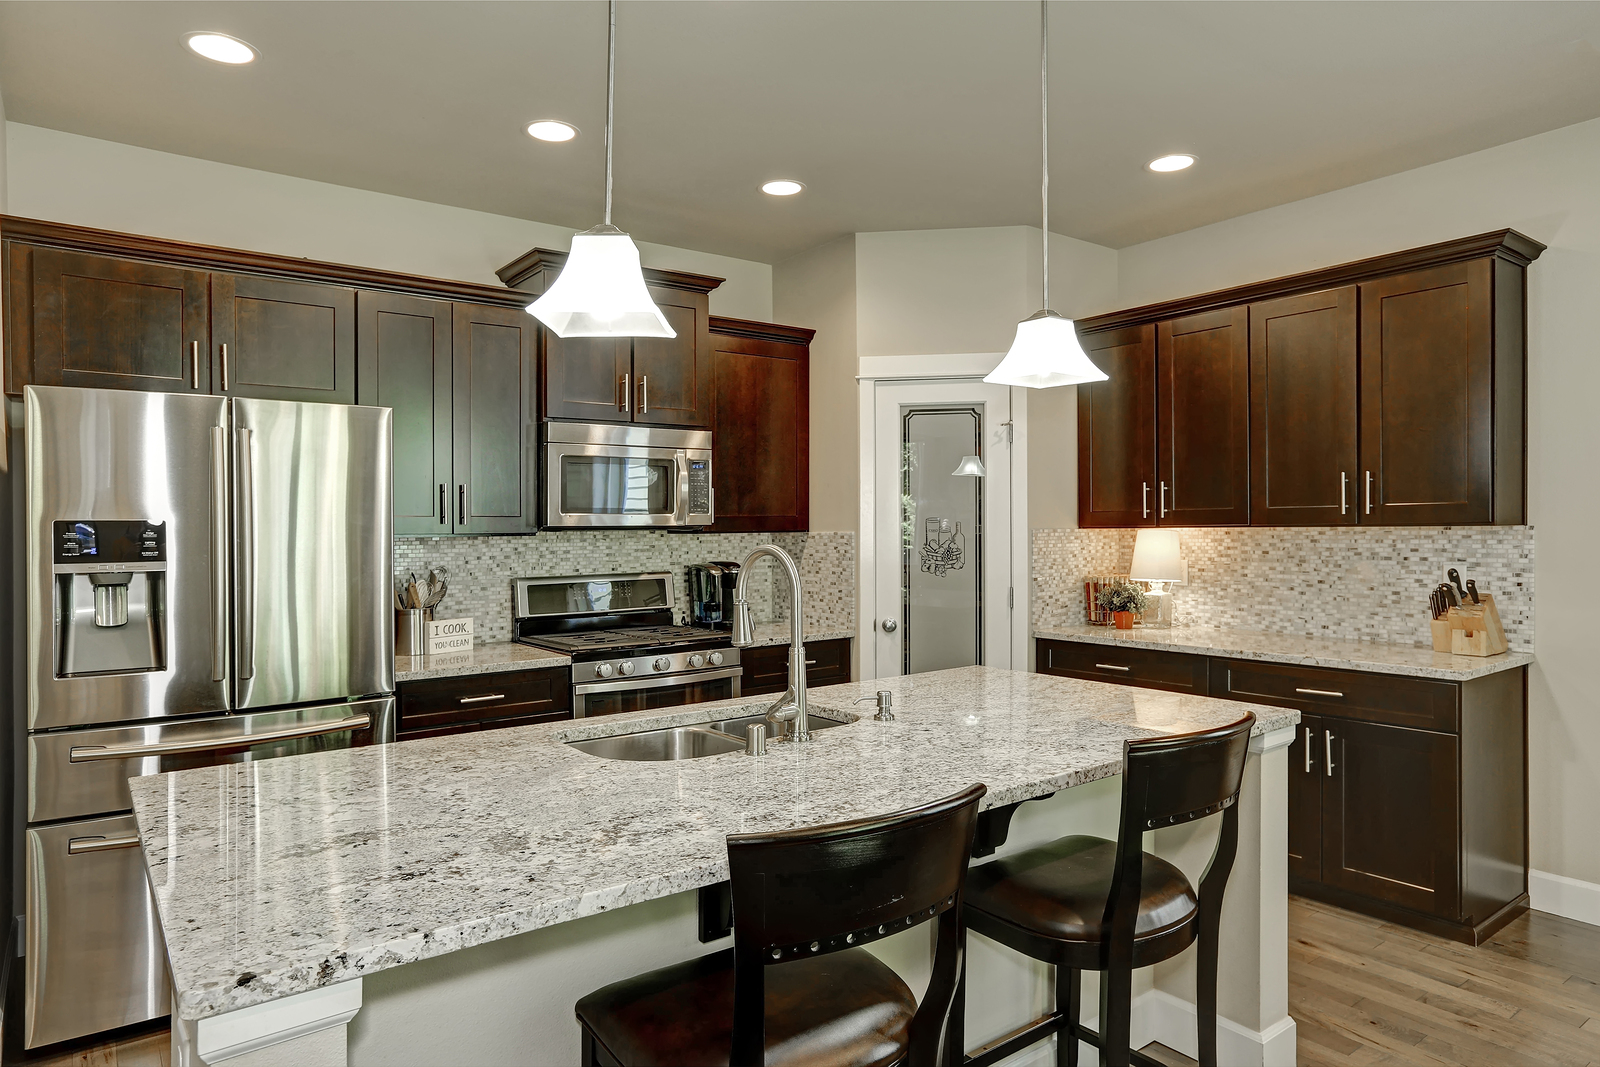 how to have a stress free kitchen remodel free kitchen remodel Remodeling your kitchen is a great way to add value and aesthetic appeal to your home You spend a lot of your time in the kitchen whether you re cooking